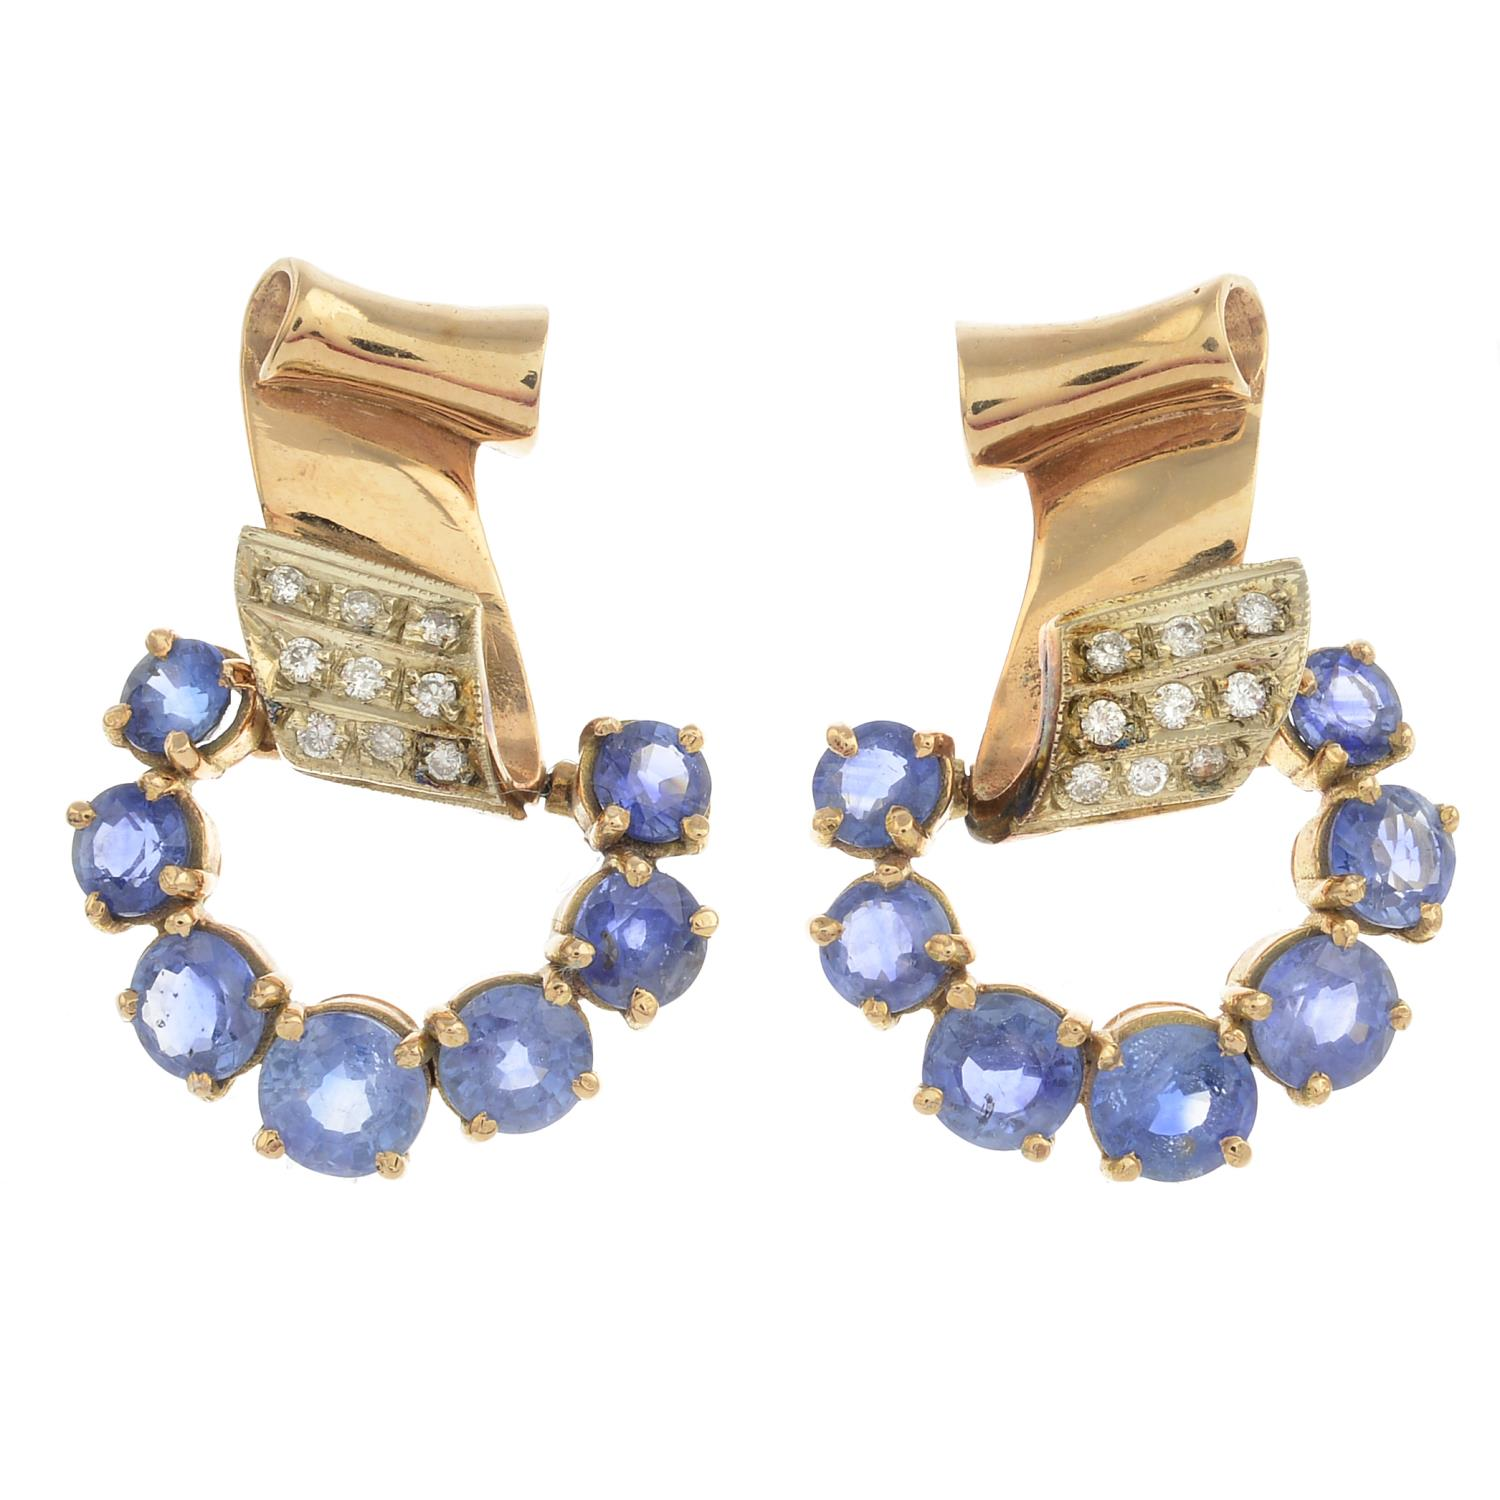 Lot 7 - A pair of mid 20th century gold sapphire and diamond earrings.Estimated total diamond weight